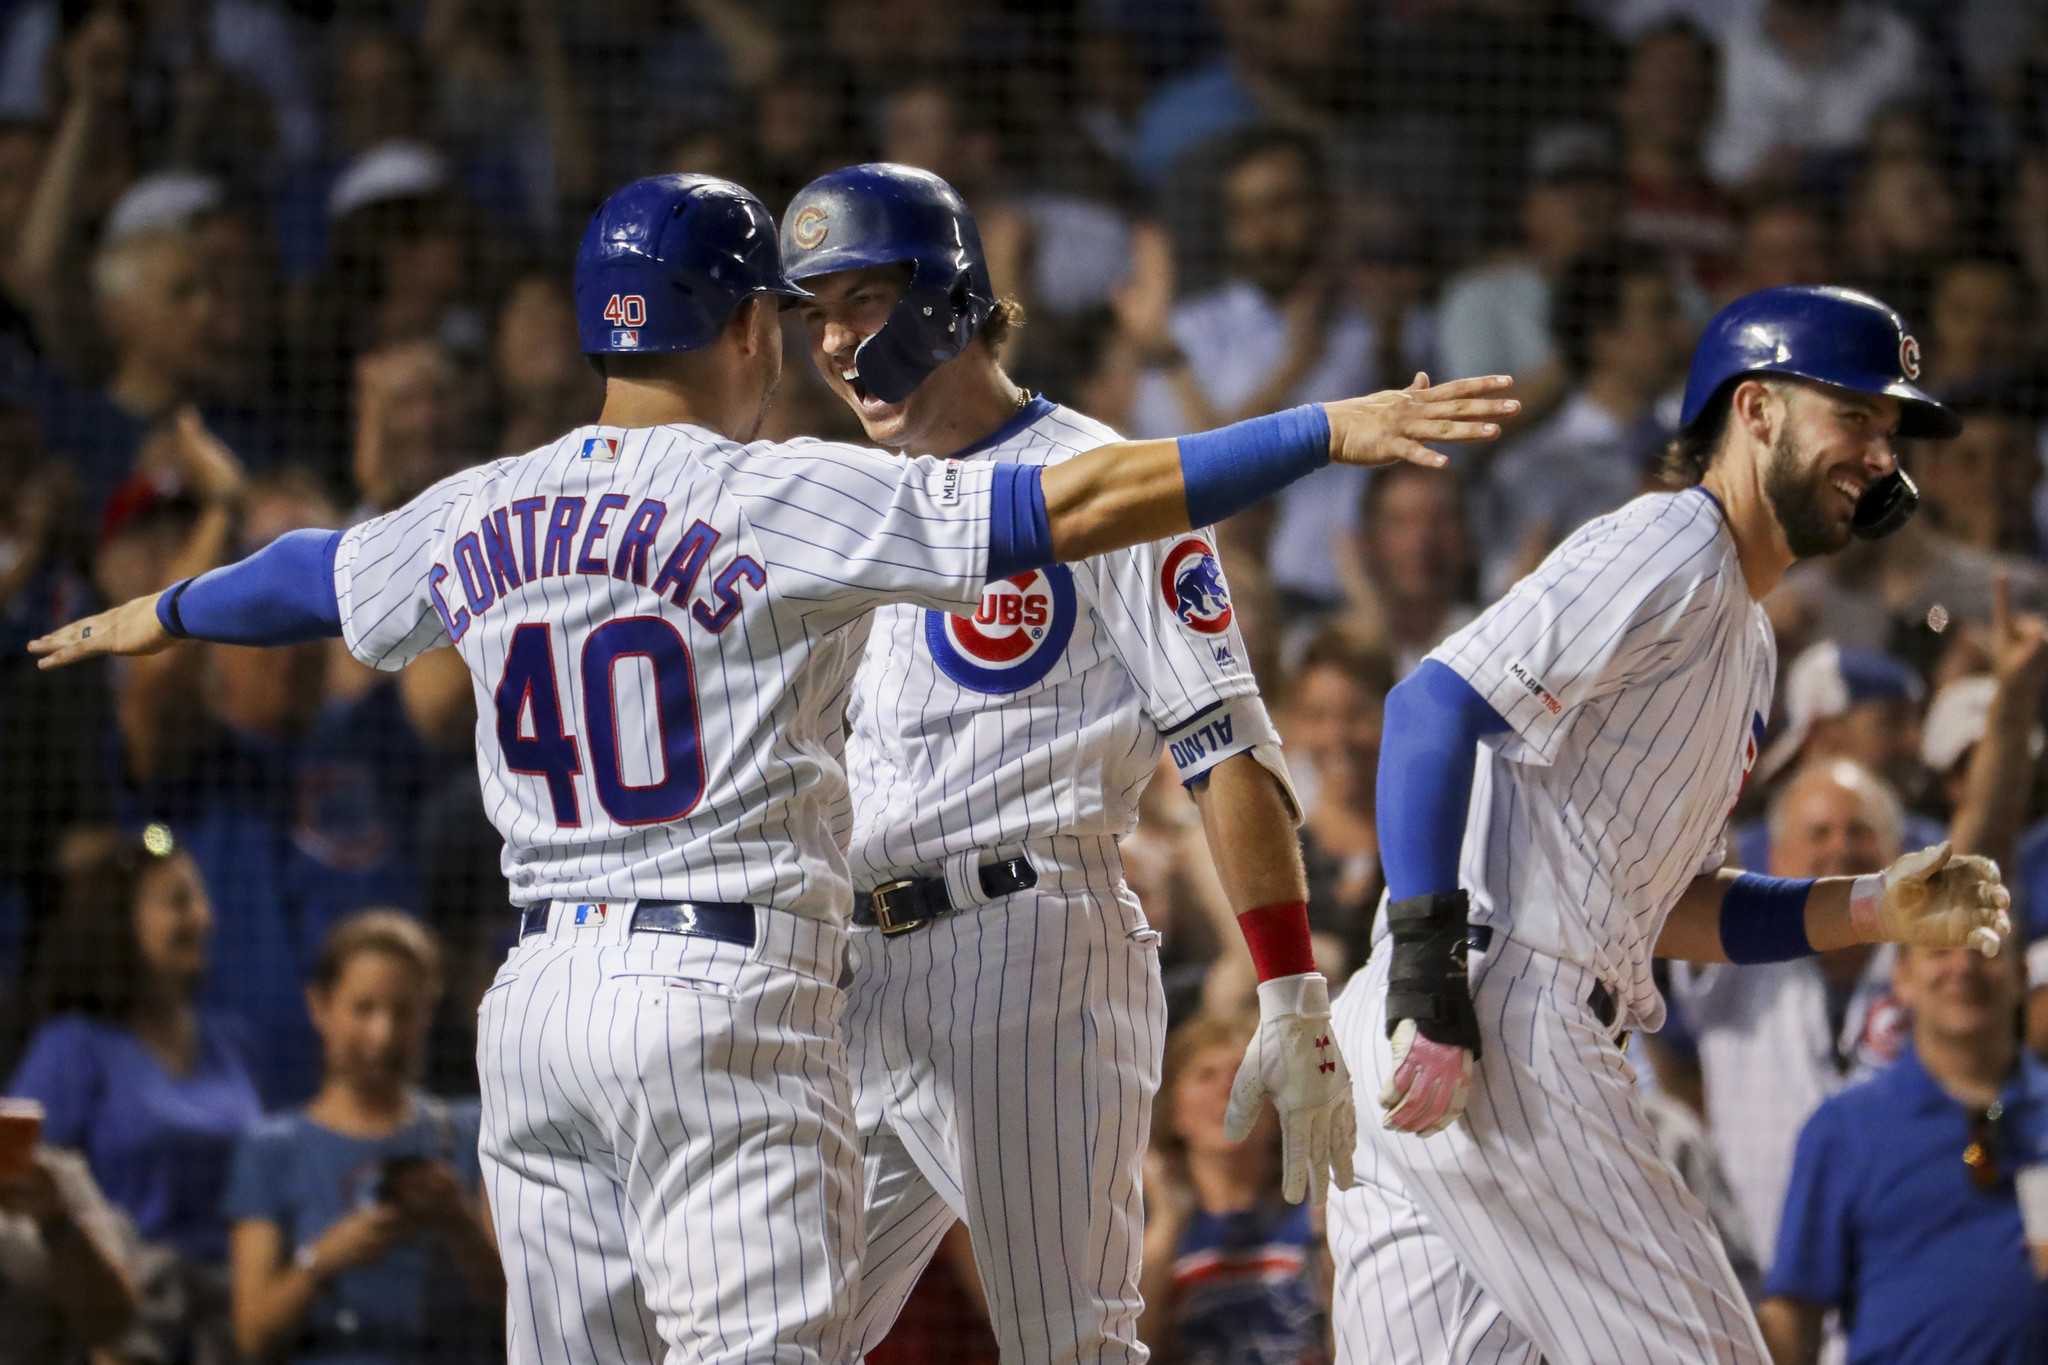 Albert Almora's grand slam and homers by Anthony Rizzo and Javier Baez vault the Cubs to an 8-4 win over the Phillies